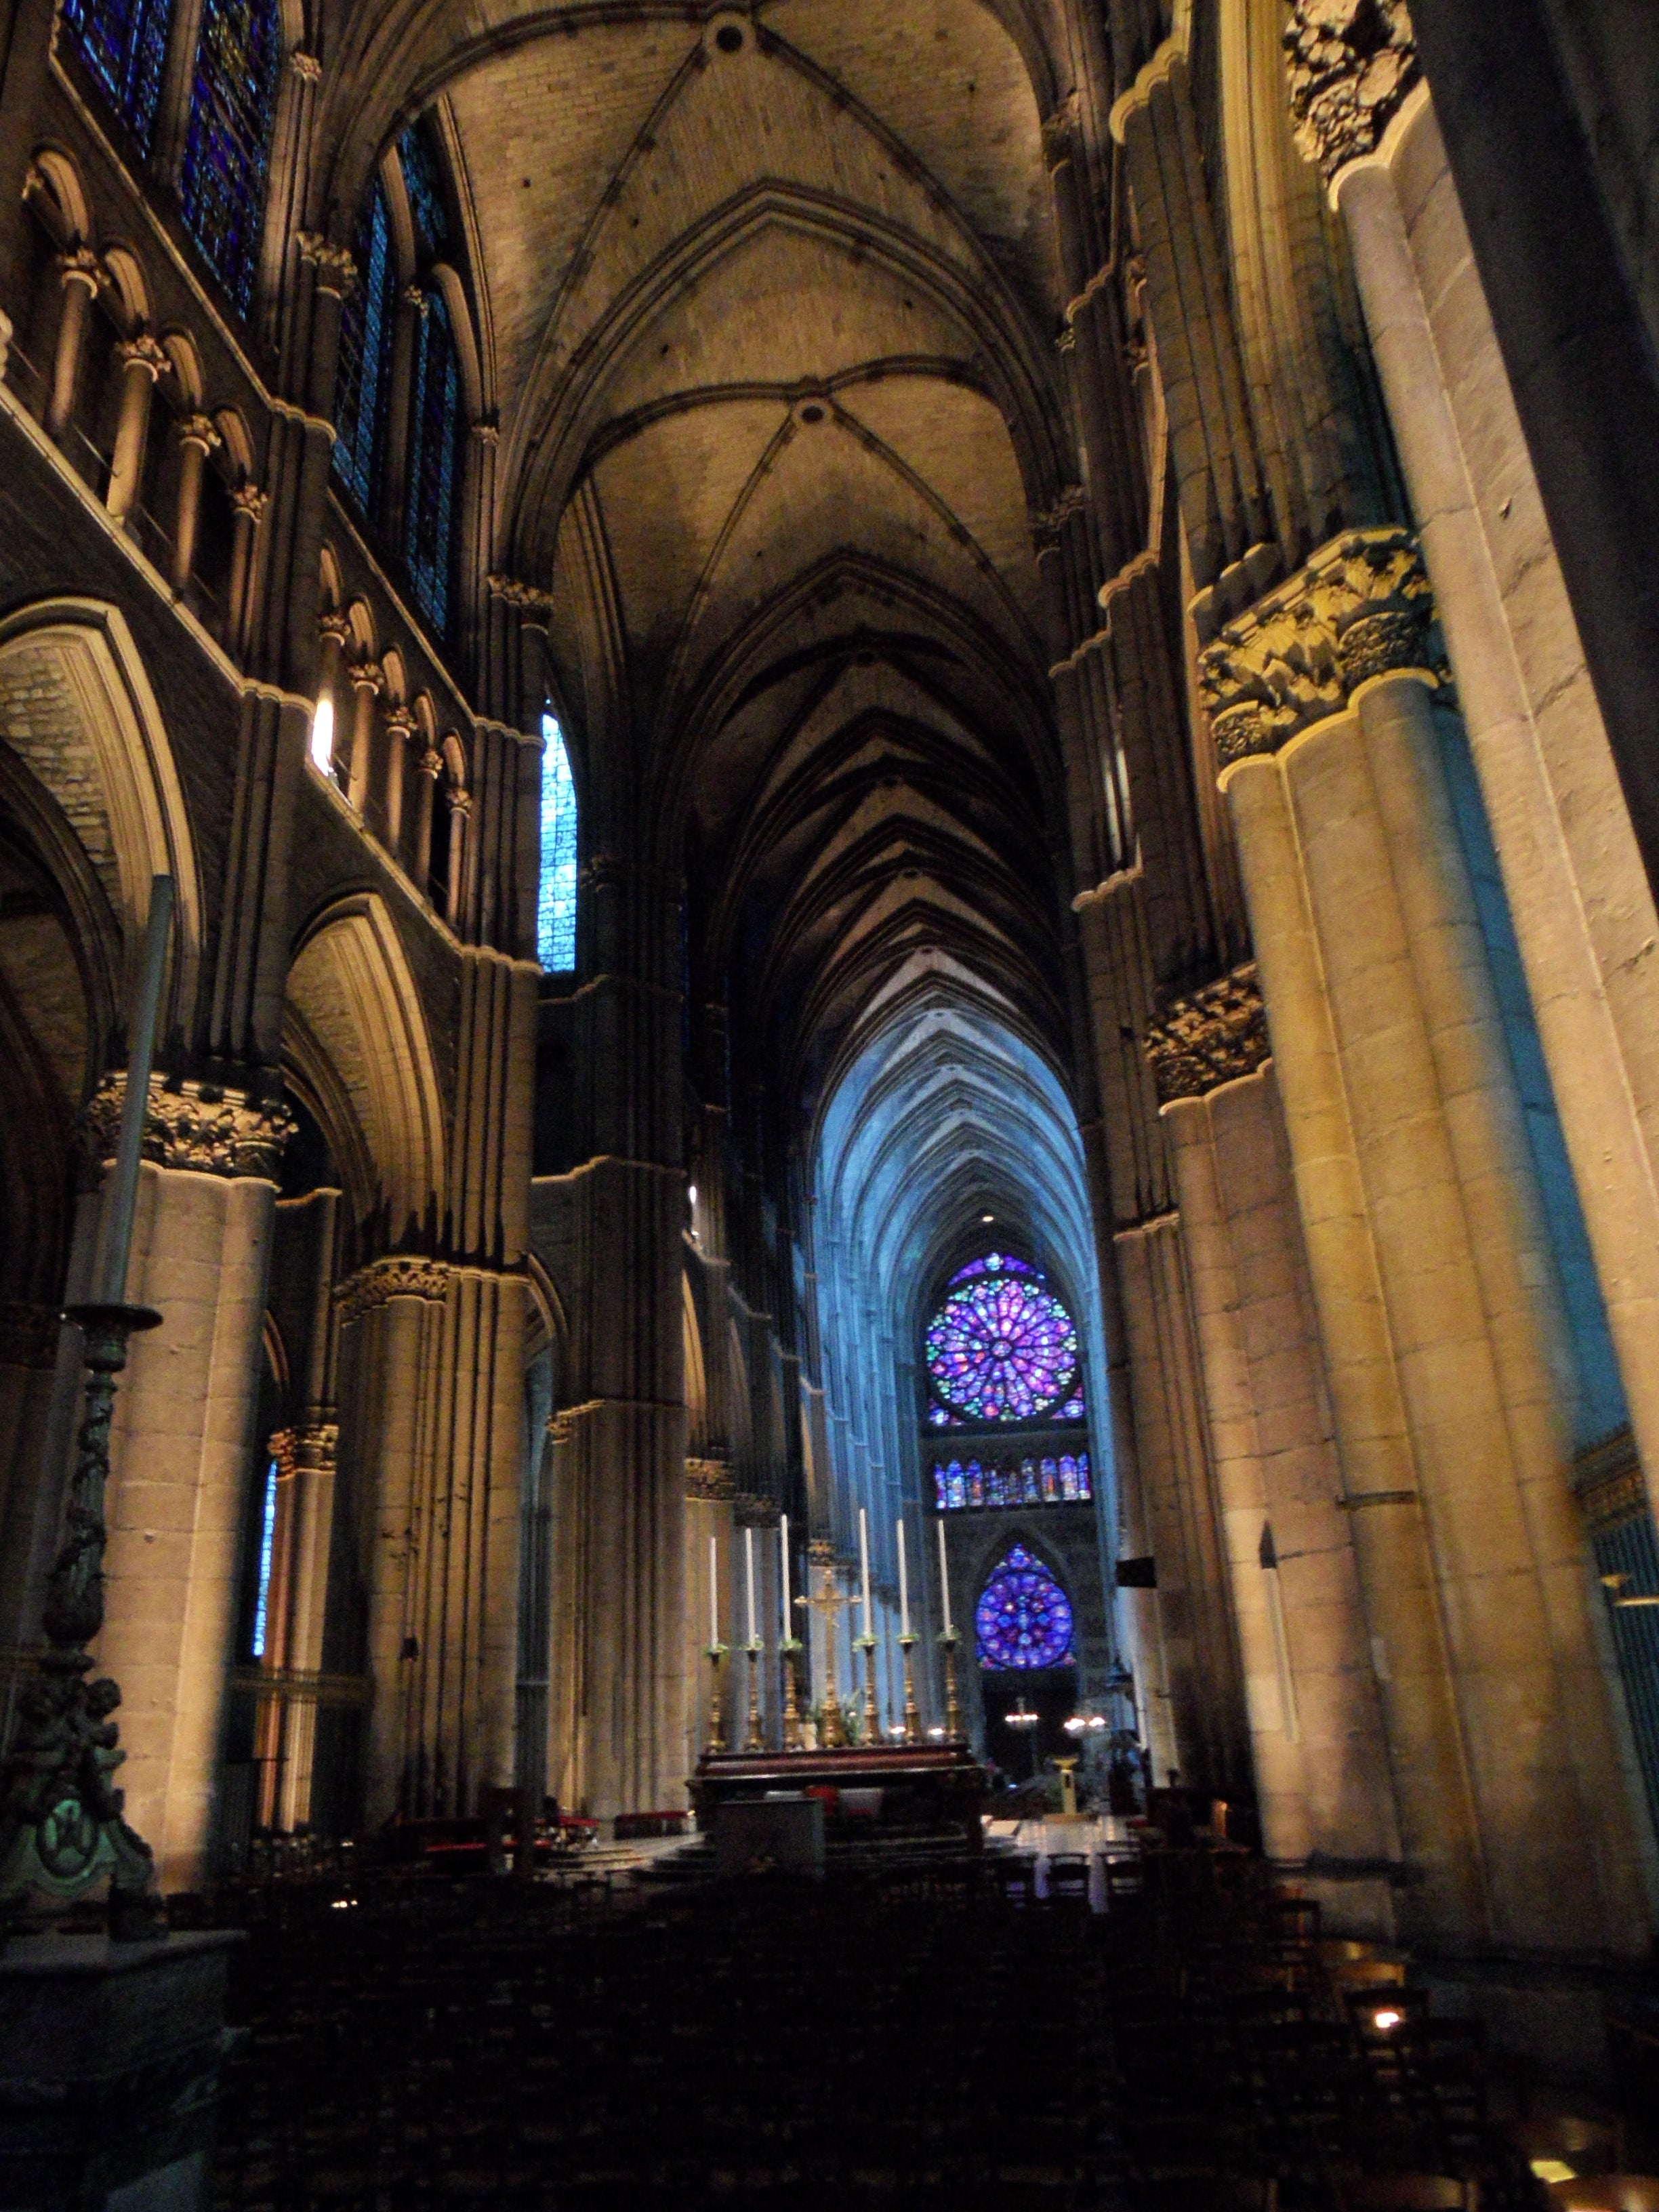 Arco en Catedral de Reims